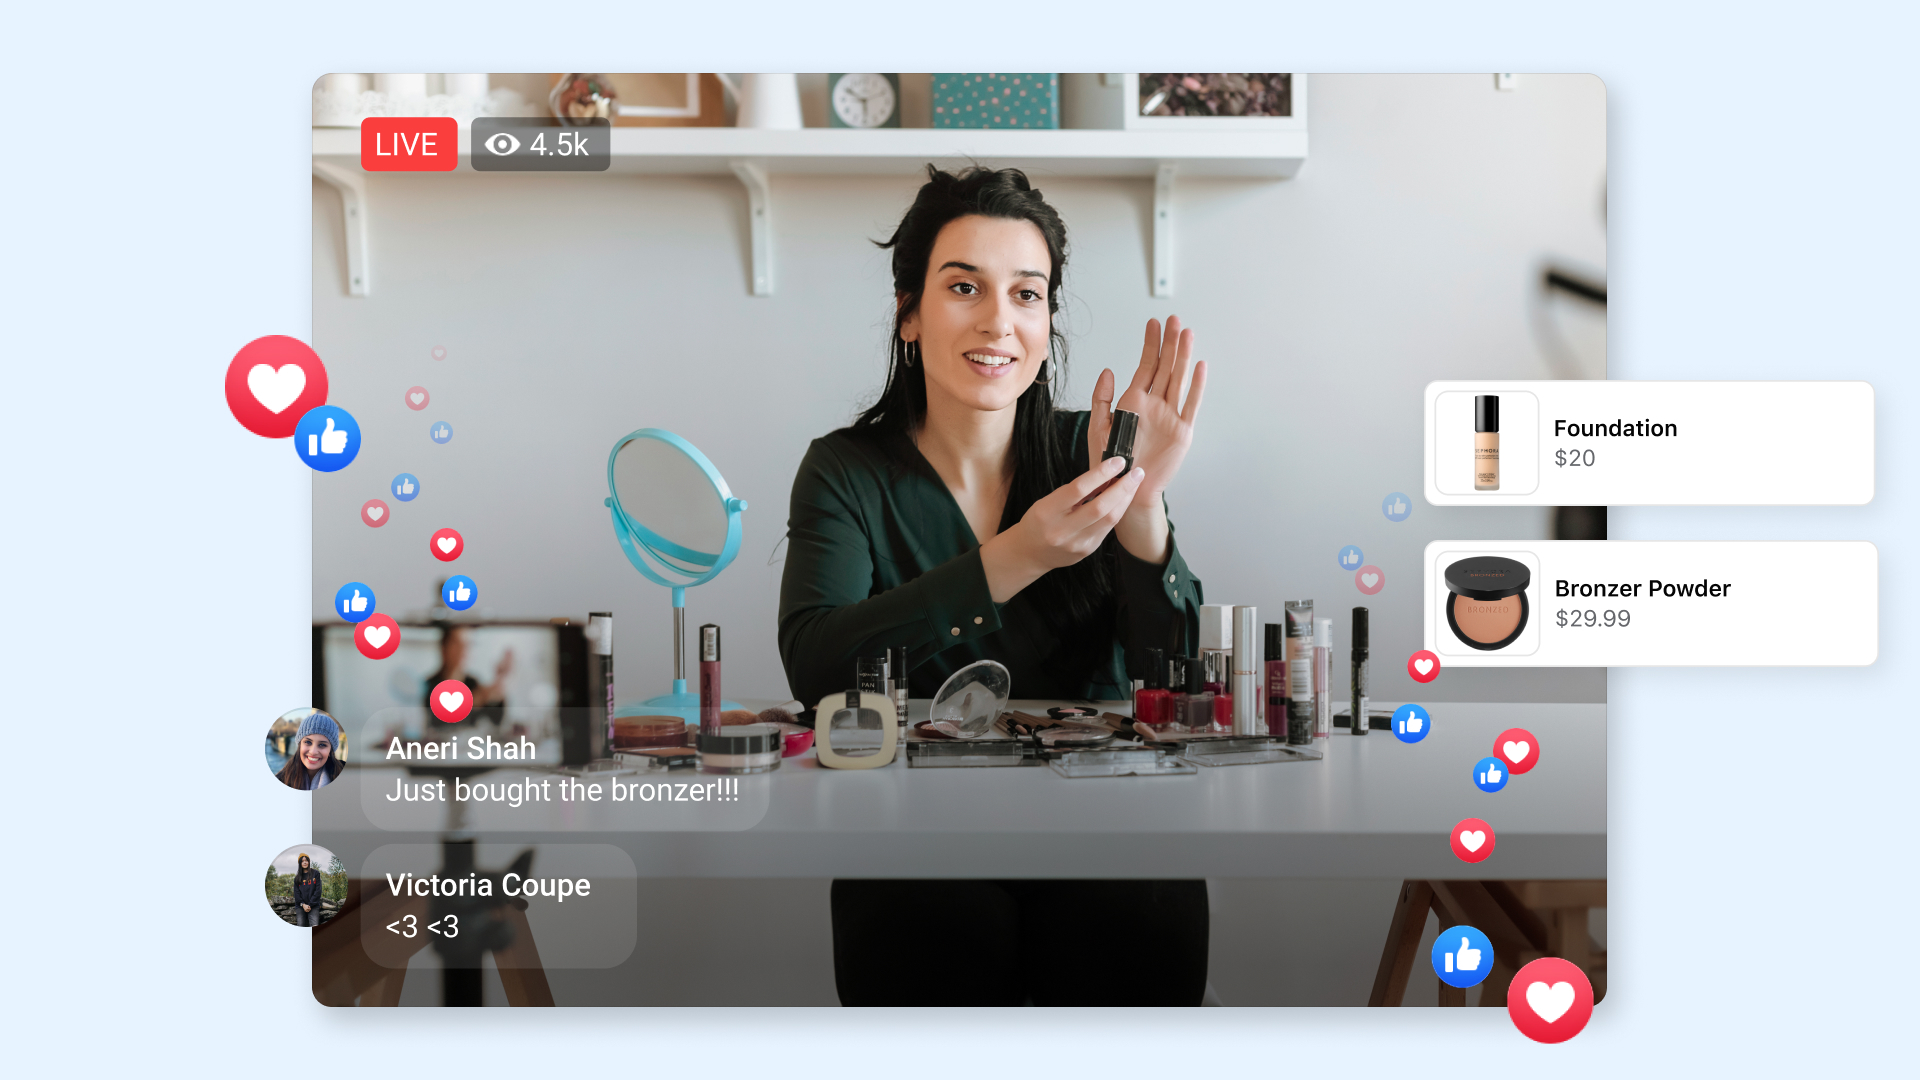 Facebook launched Live Shopping Fridays to promote shoppable livestreaming on the platform.